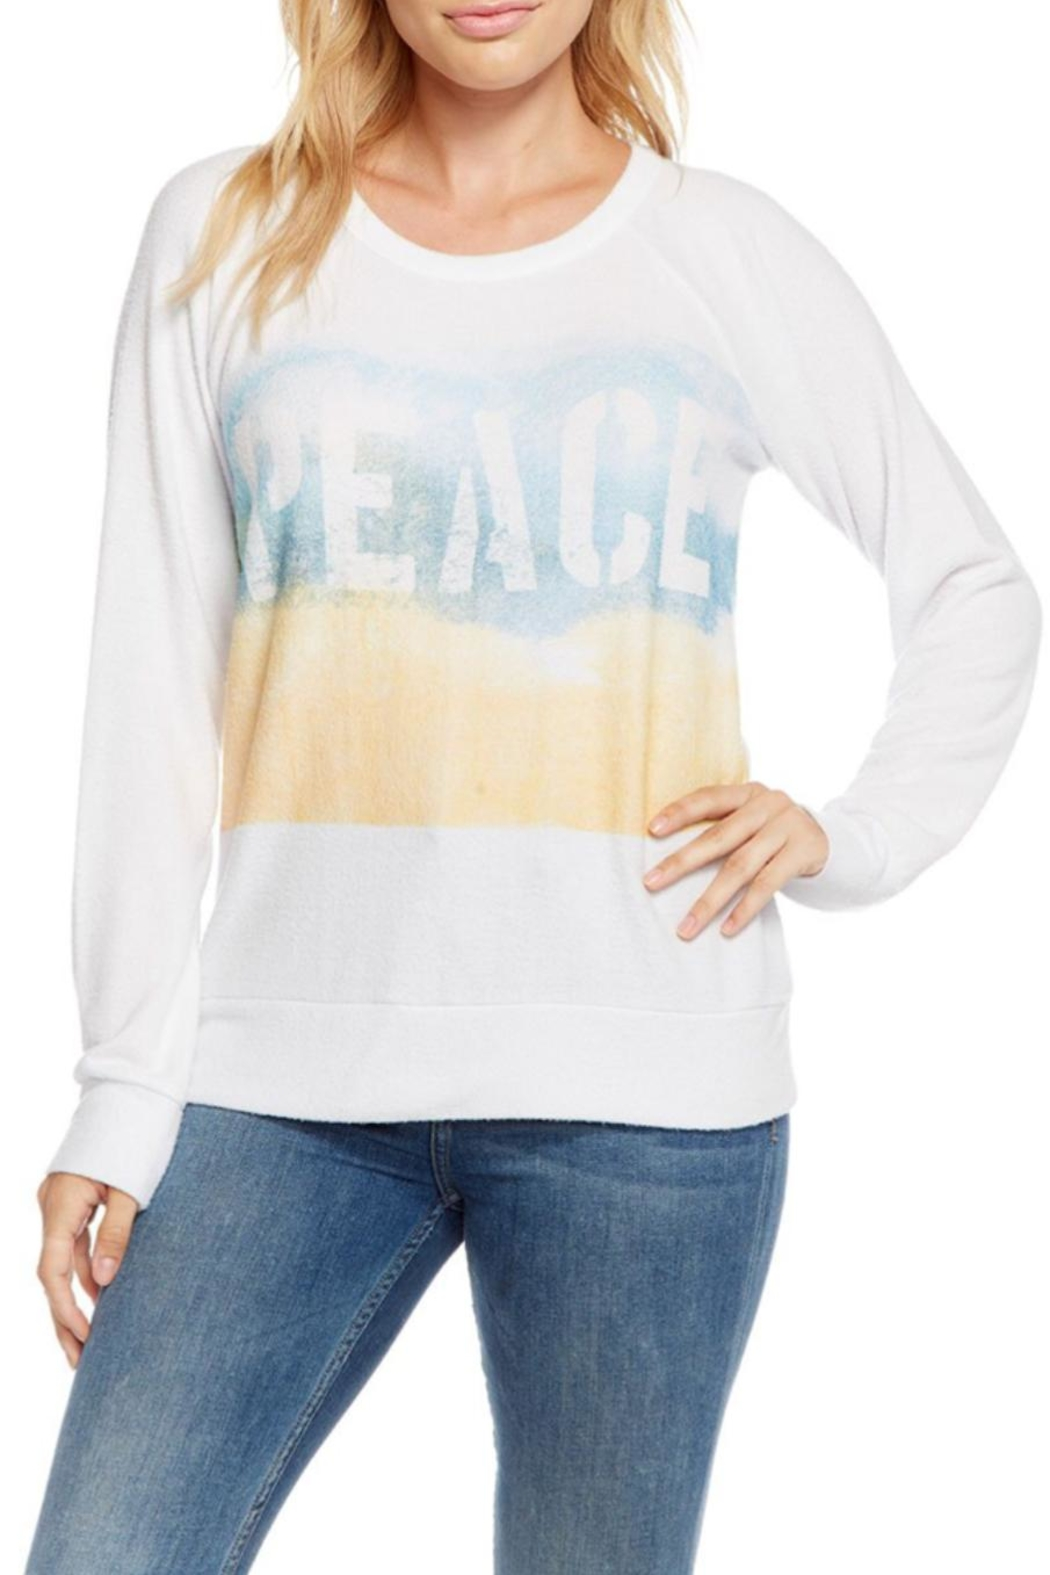 Chaser Peace Beach Sweatshirt - Main Image